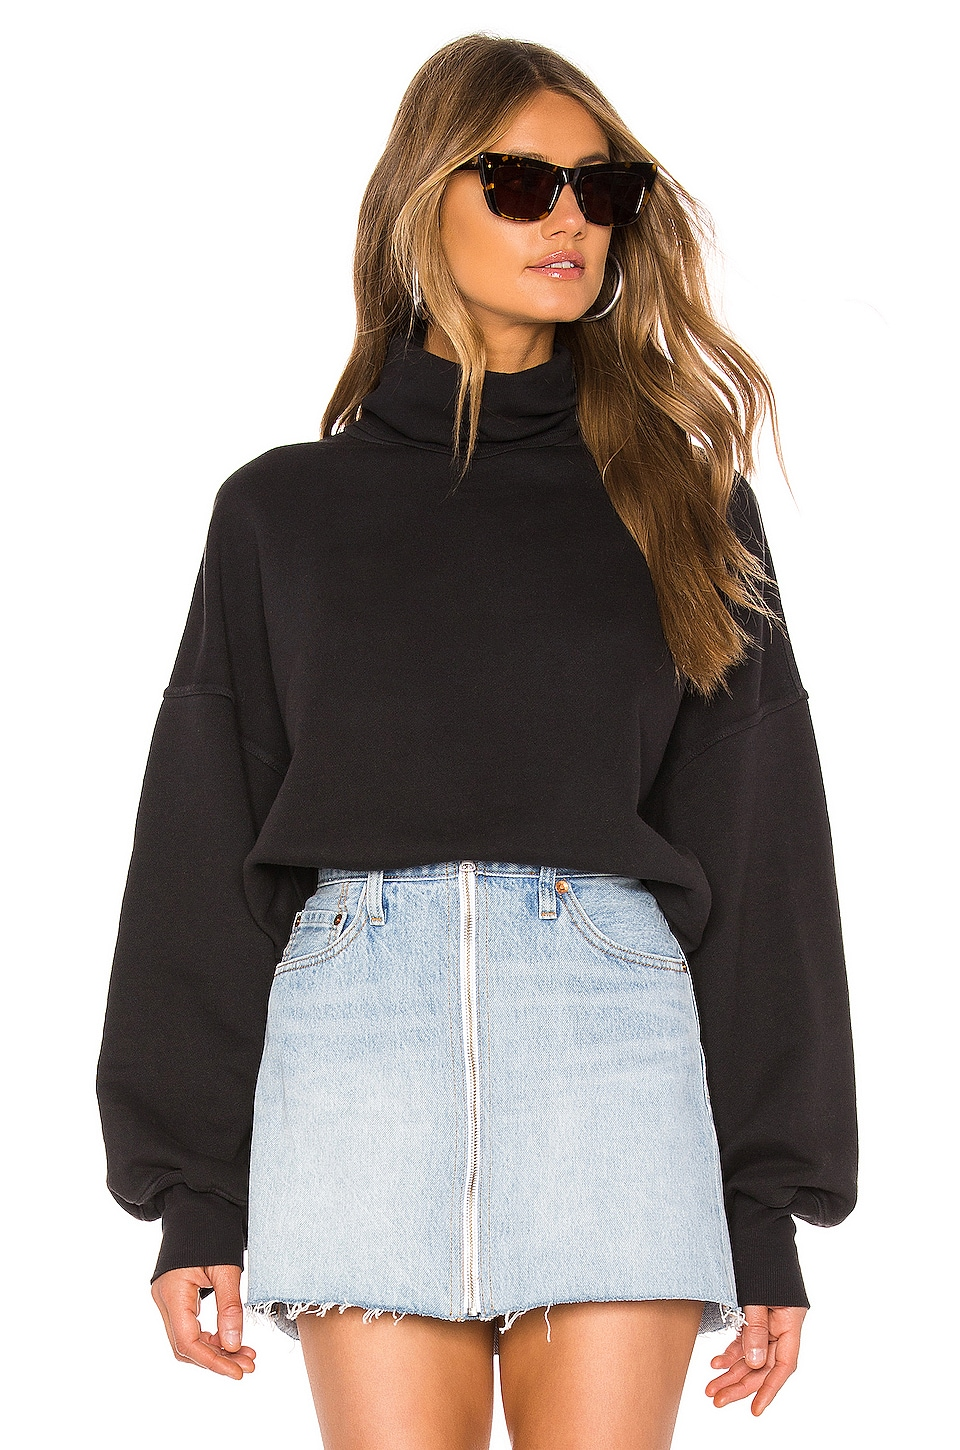 AGOLDE X REVOLVE Balloon Sleeve Turtleneck Sweatshirt in Black